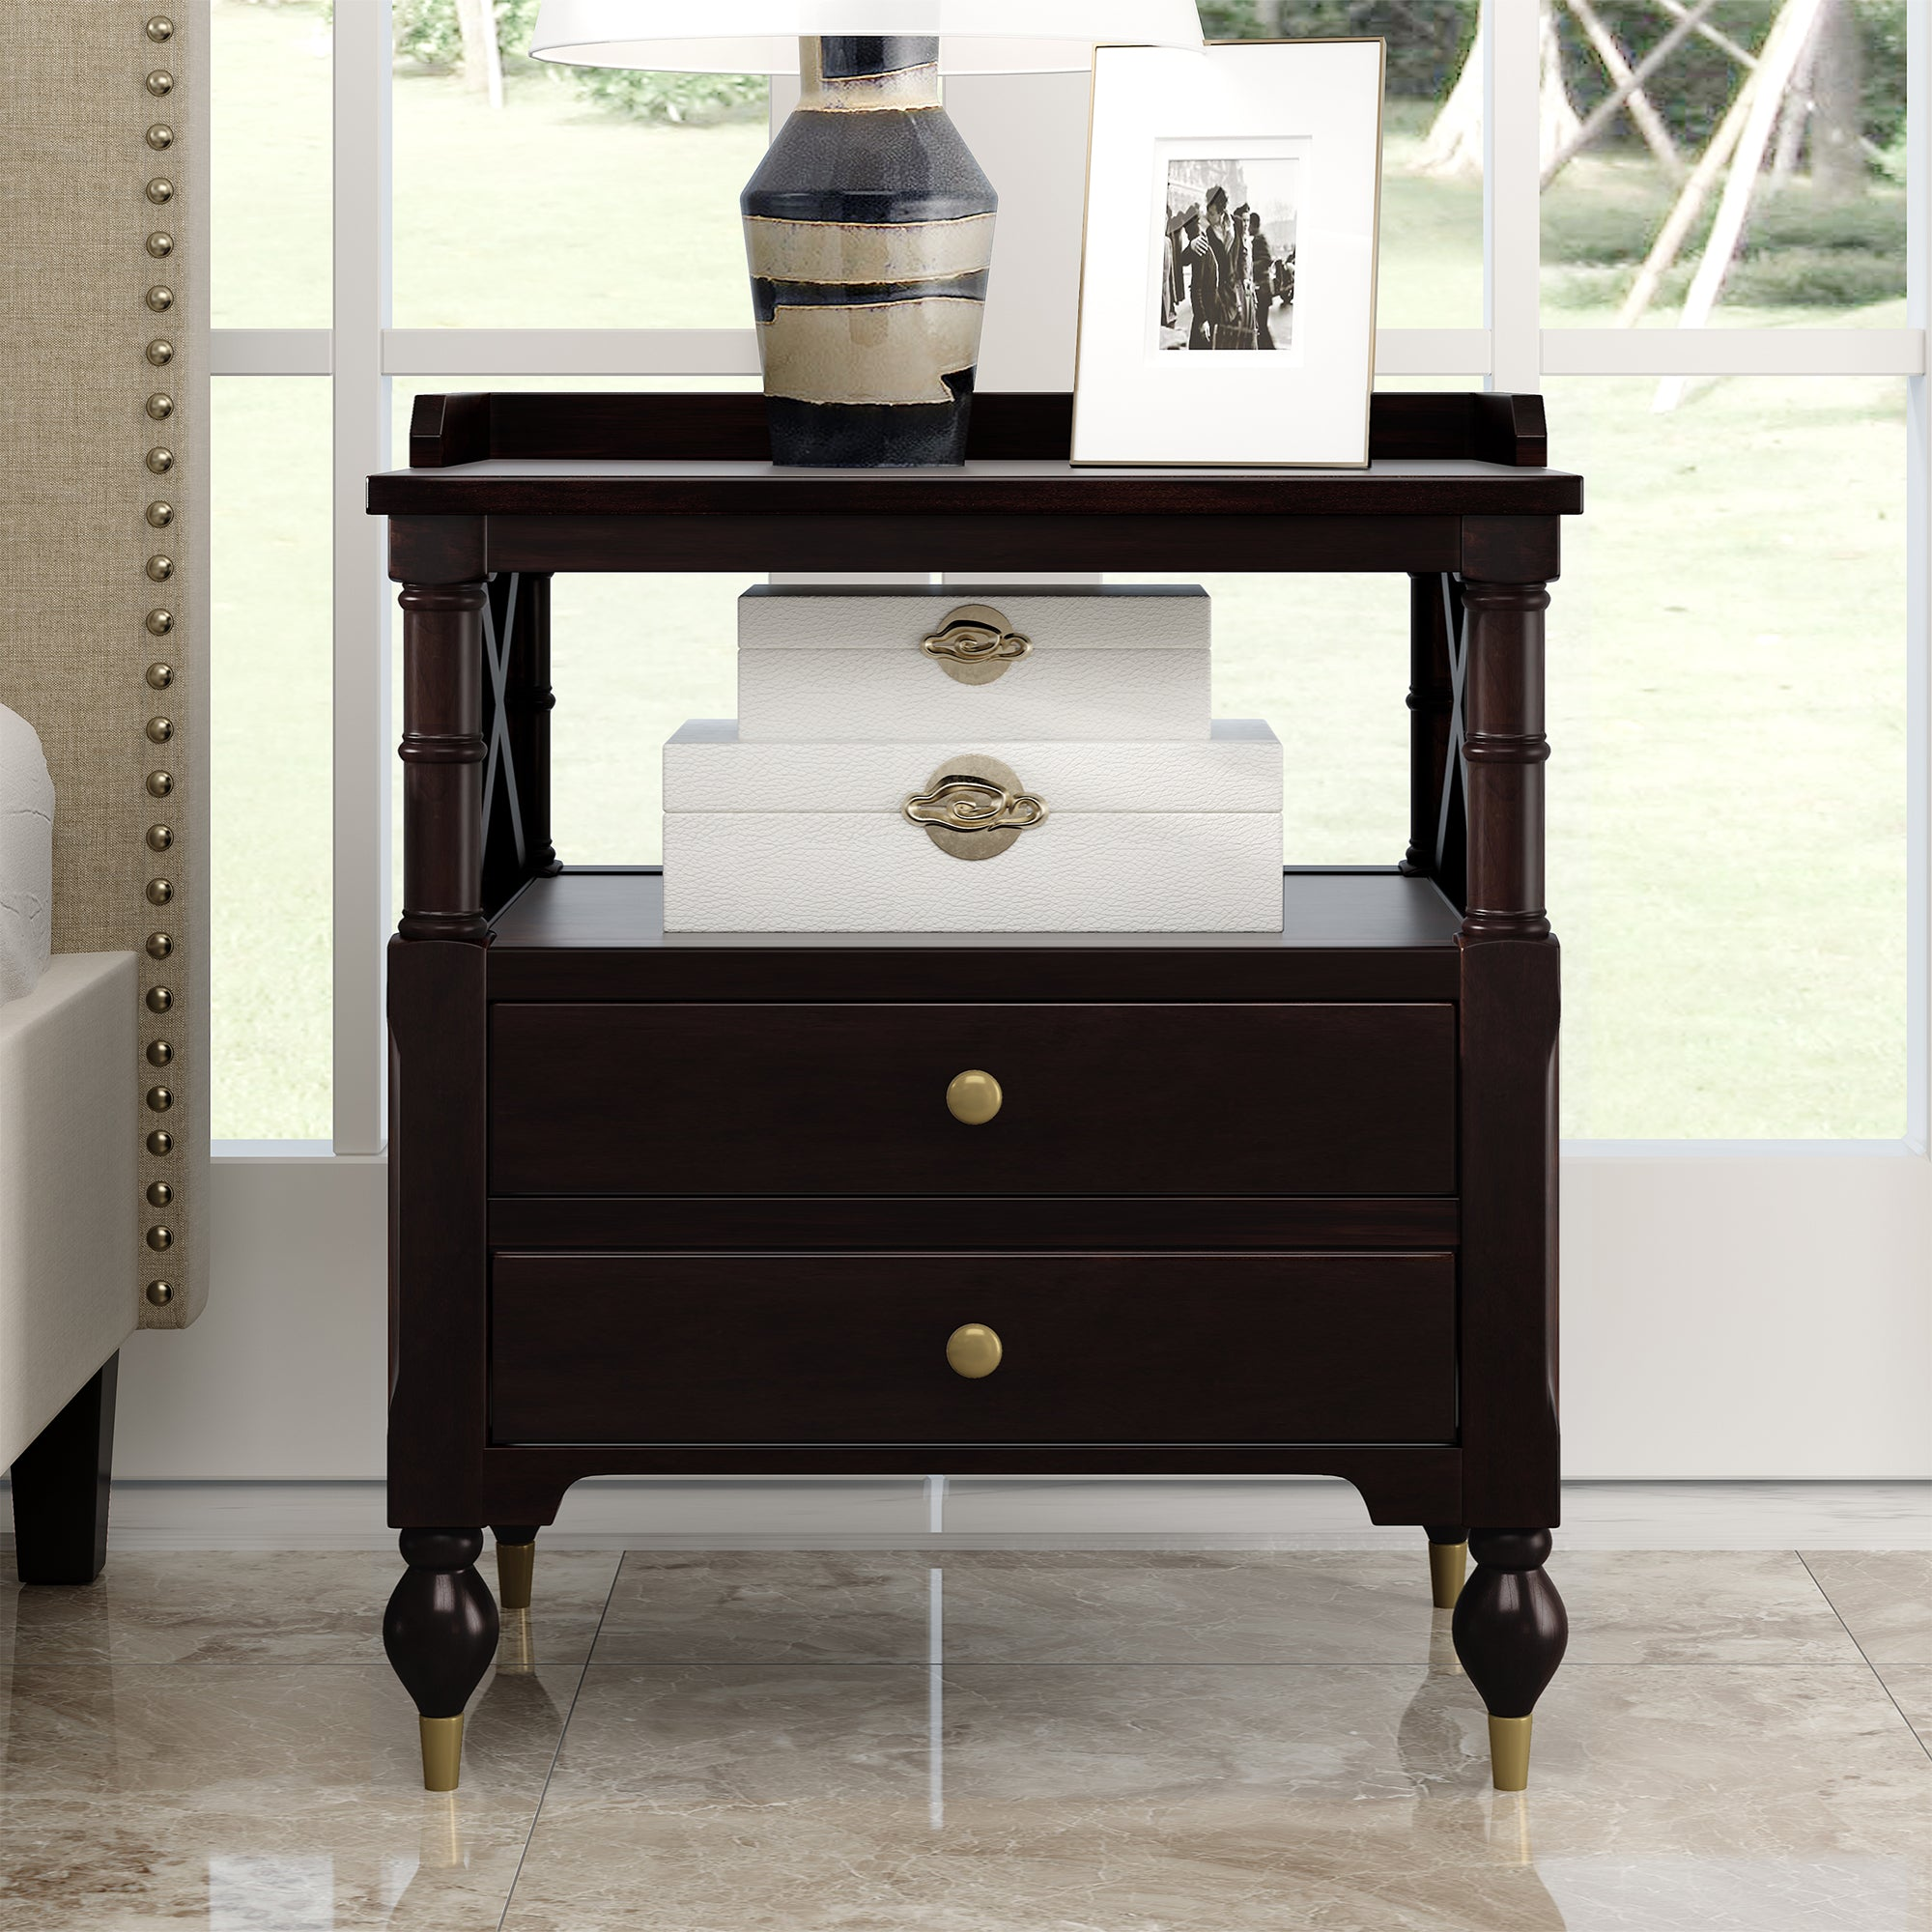 Modern Black 2 Drawer Nightstand For Bedrrom